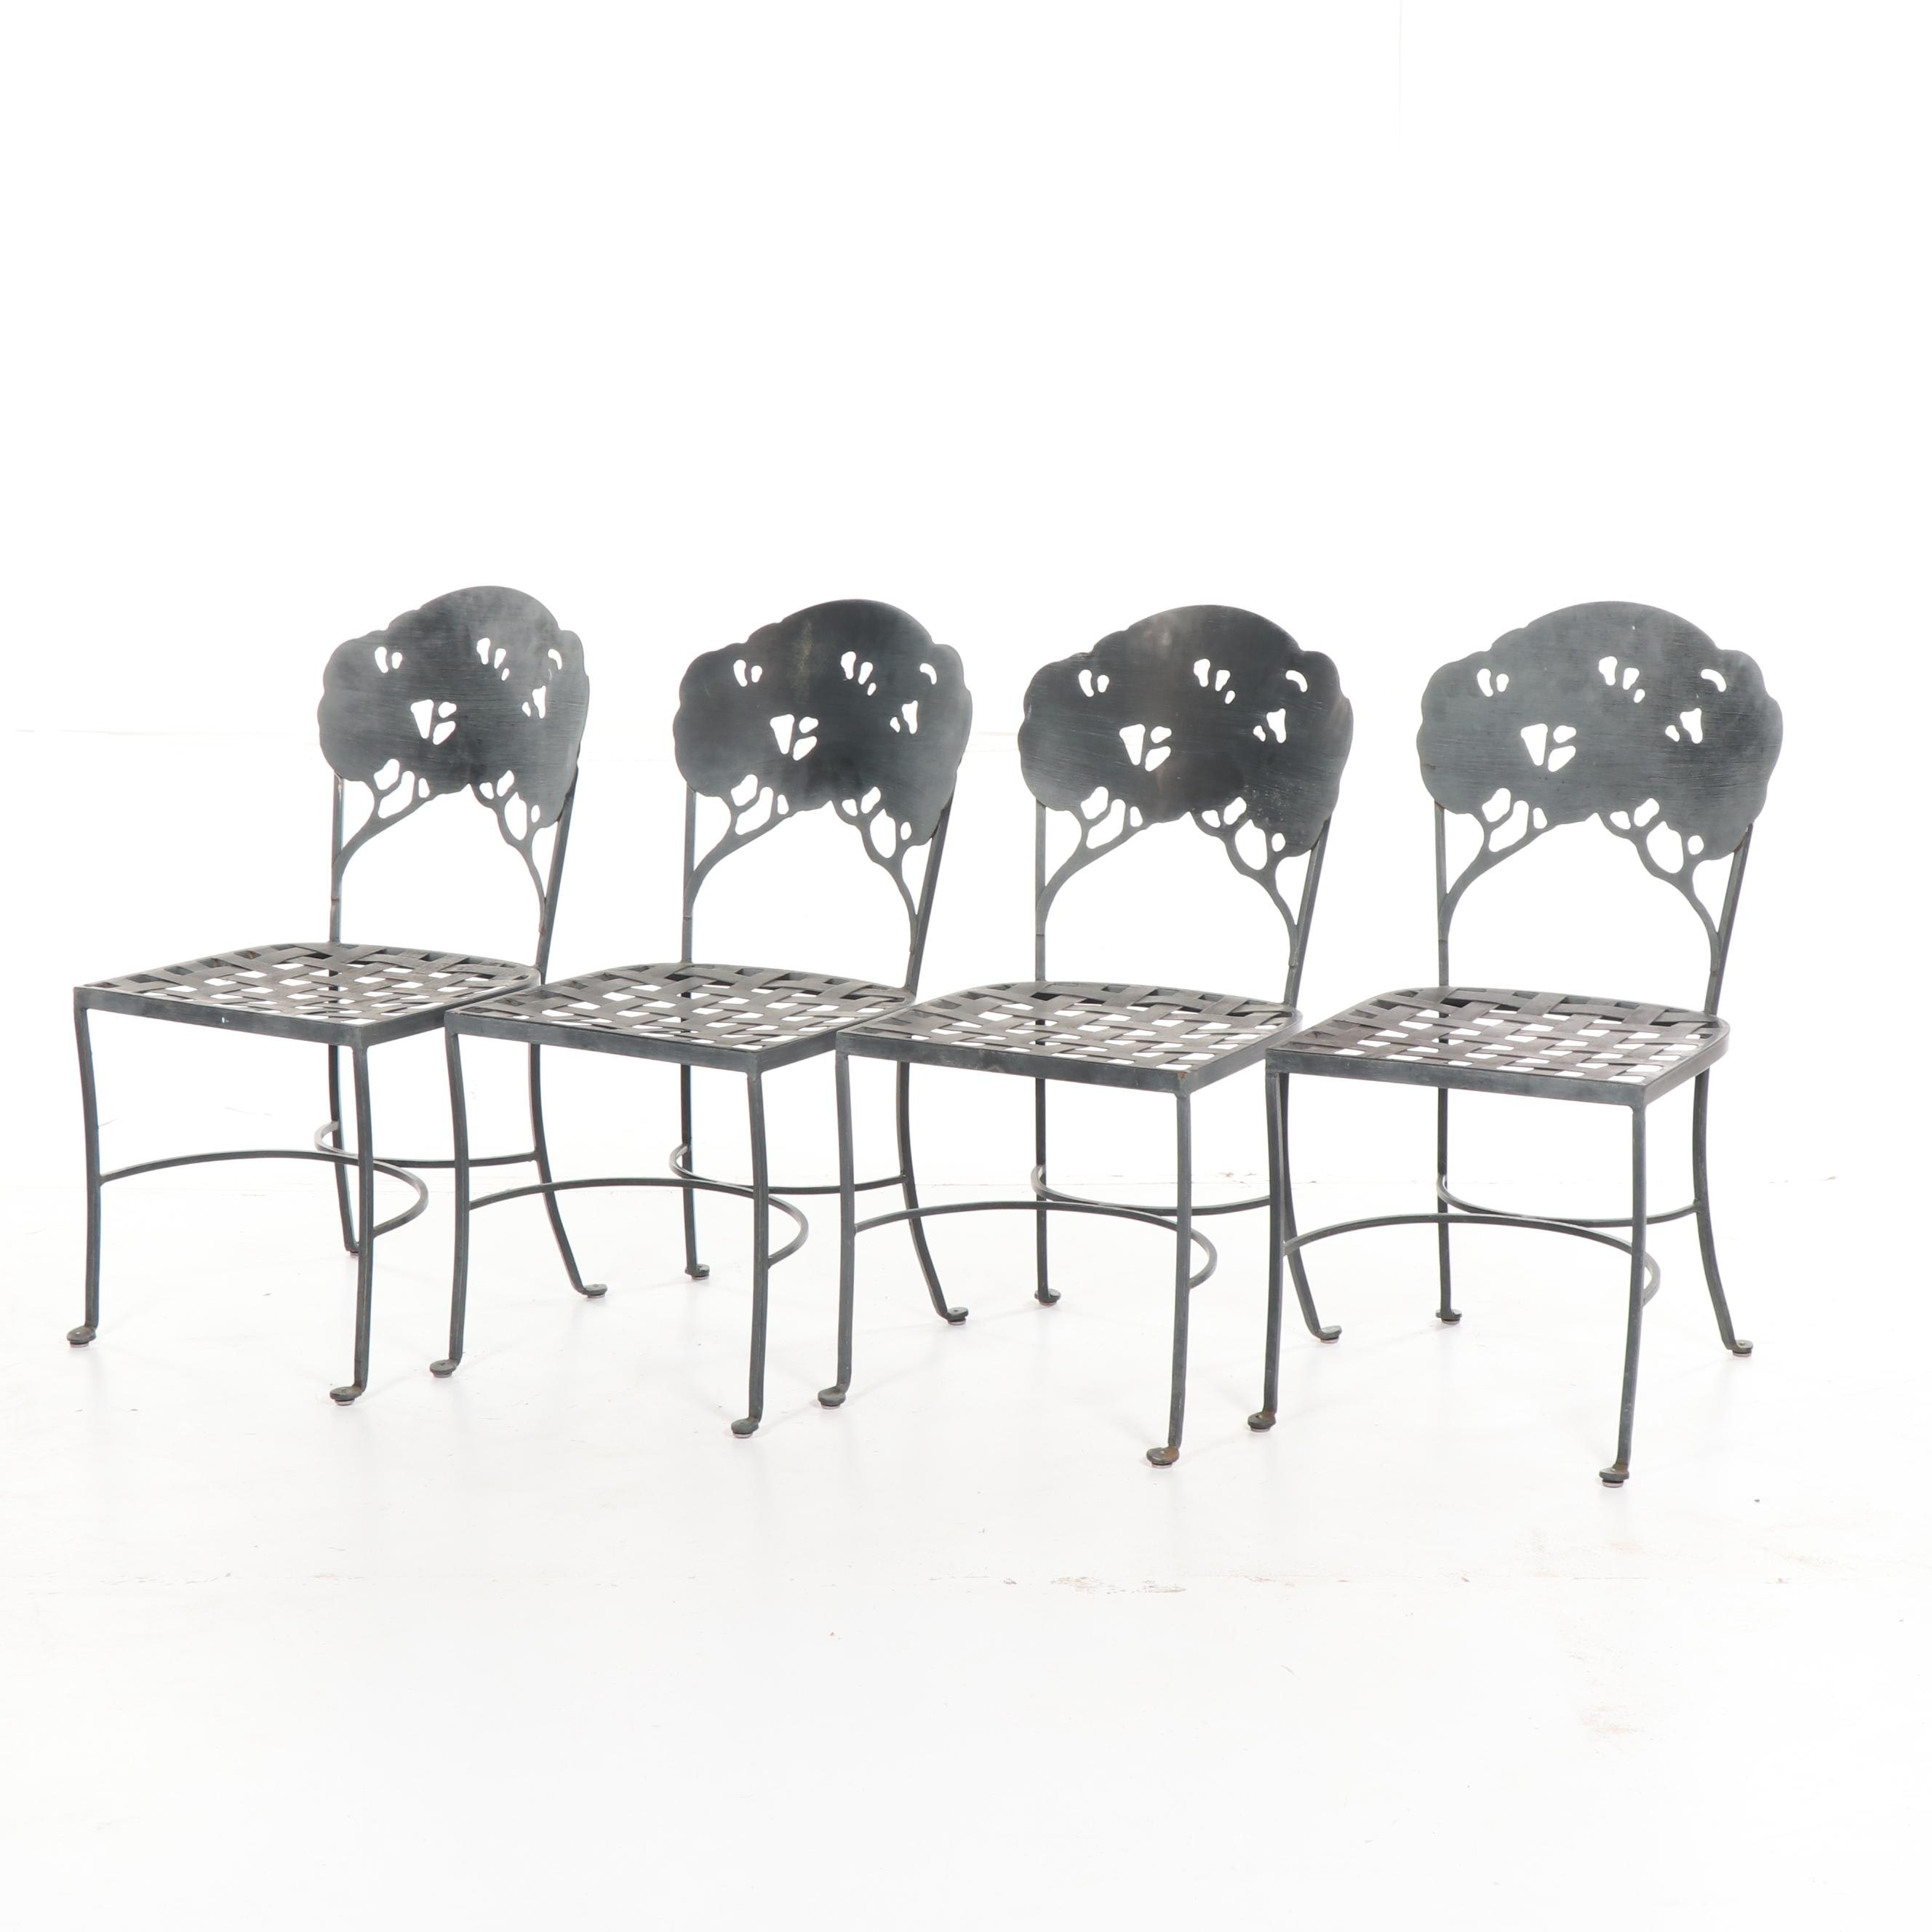 Metal Patio Chairs with Tree Motif, 21st Century